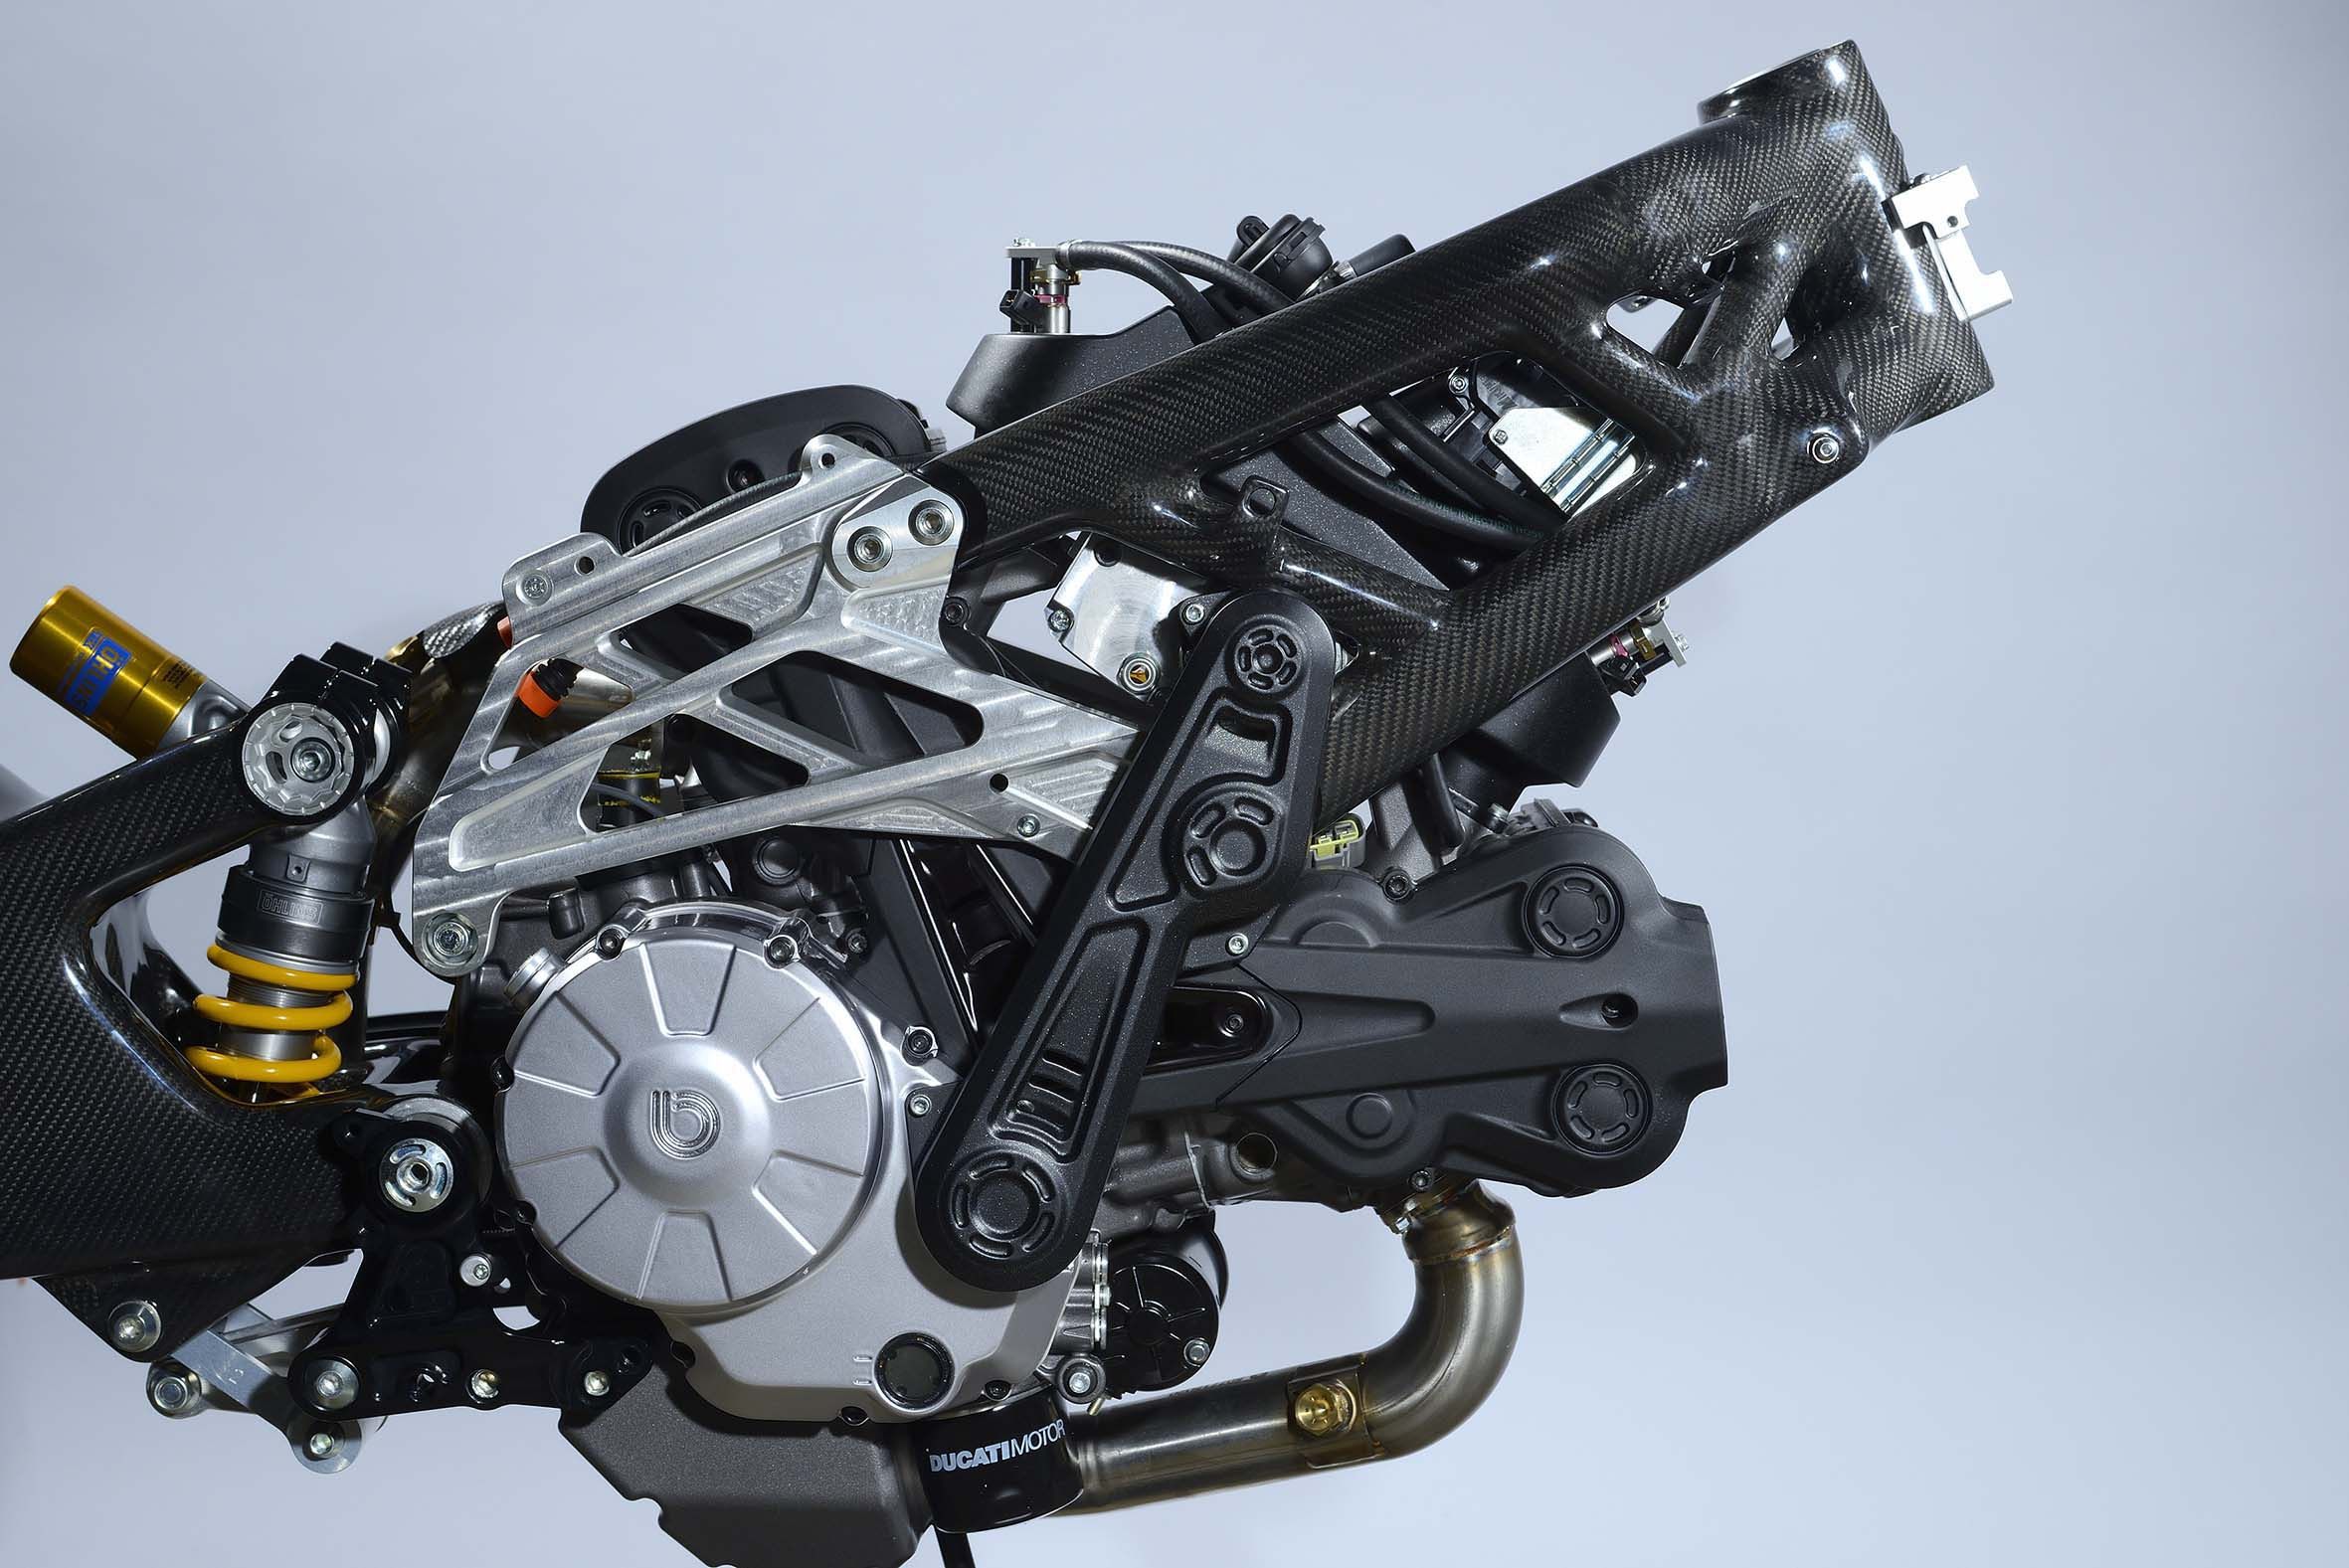 Bimota Supercharger Adds More Power To Ducati Models